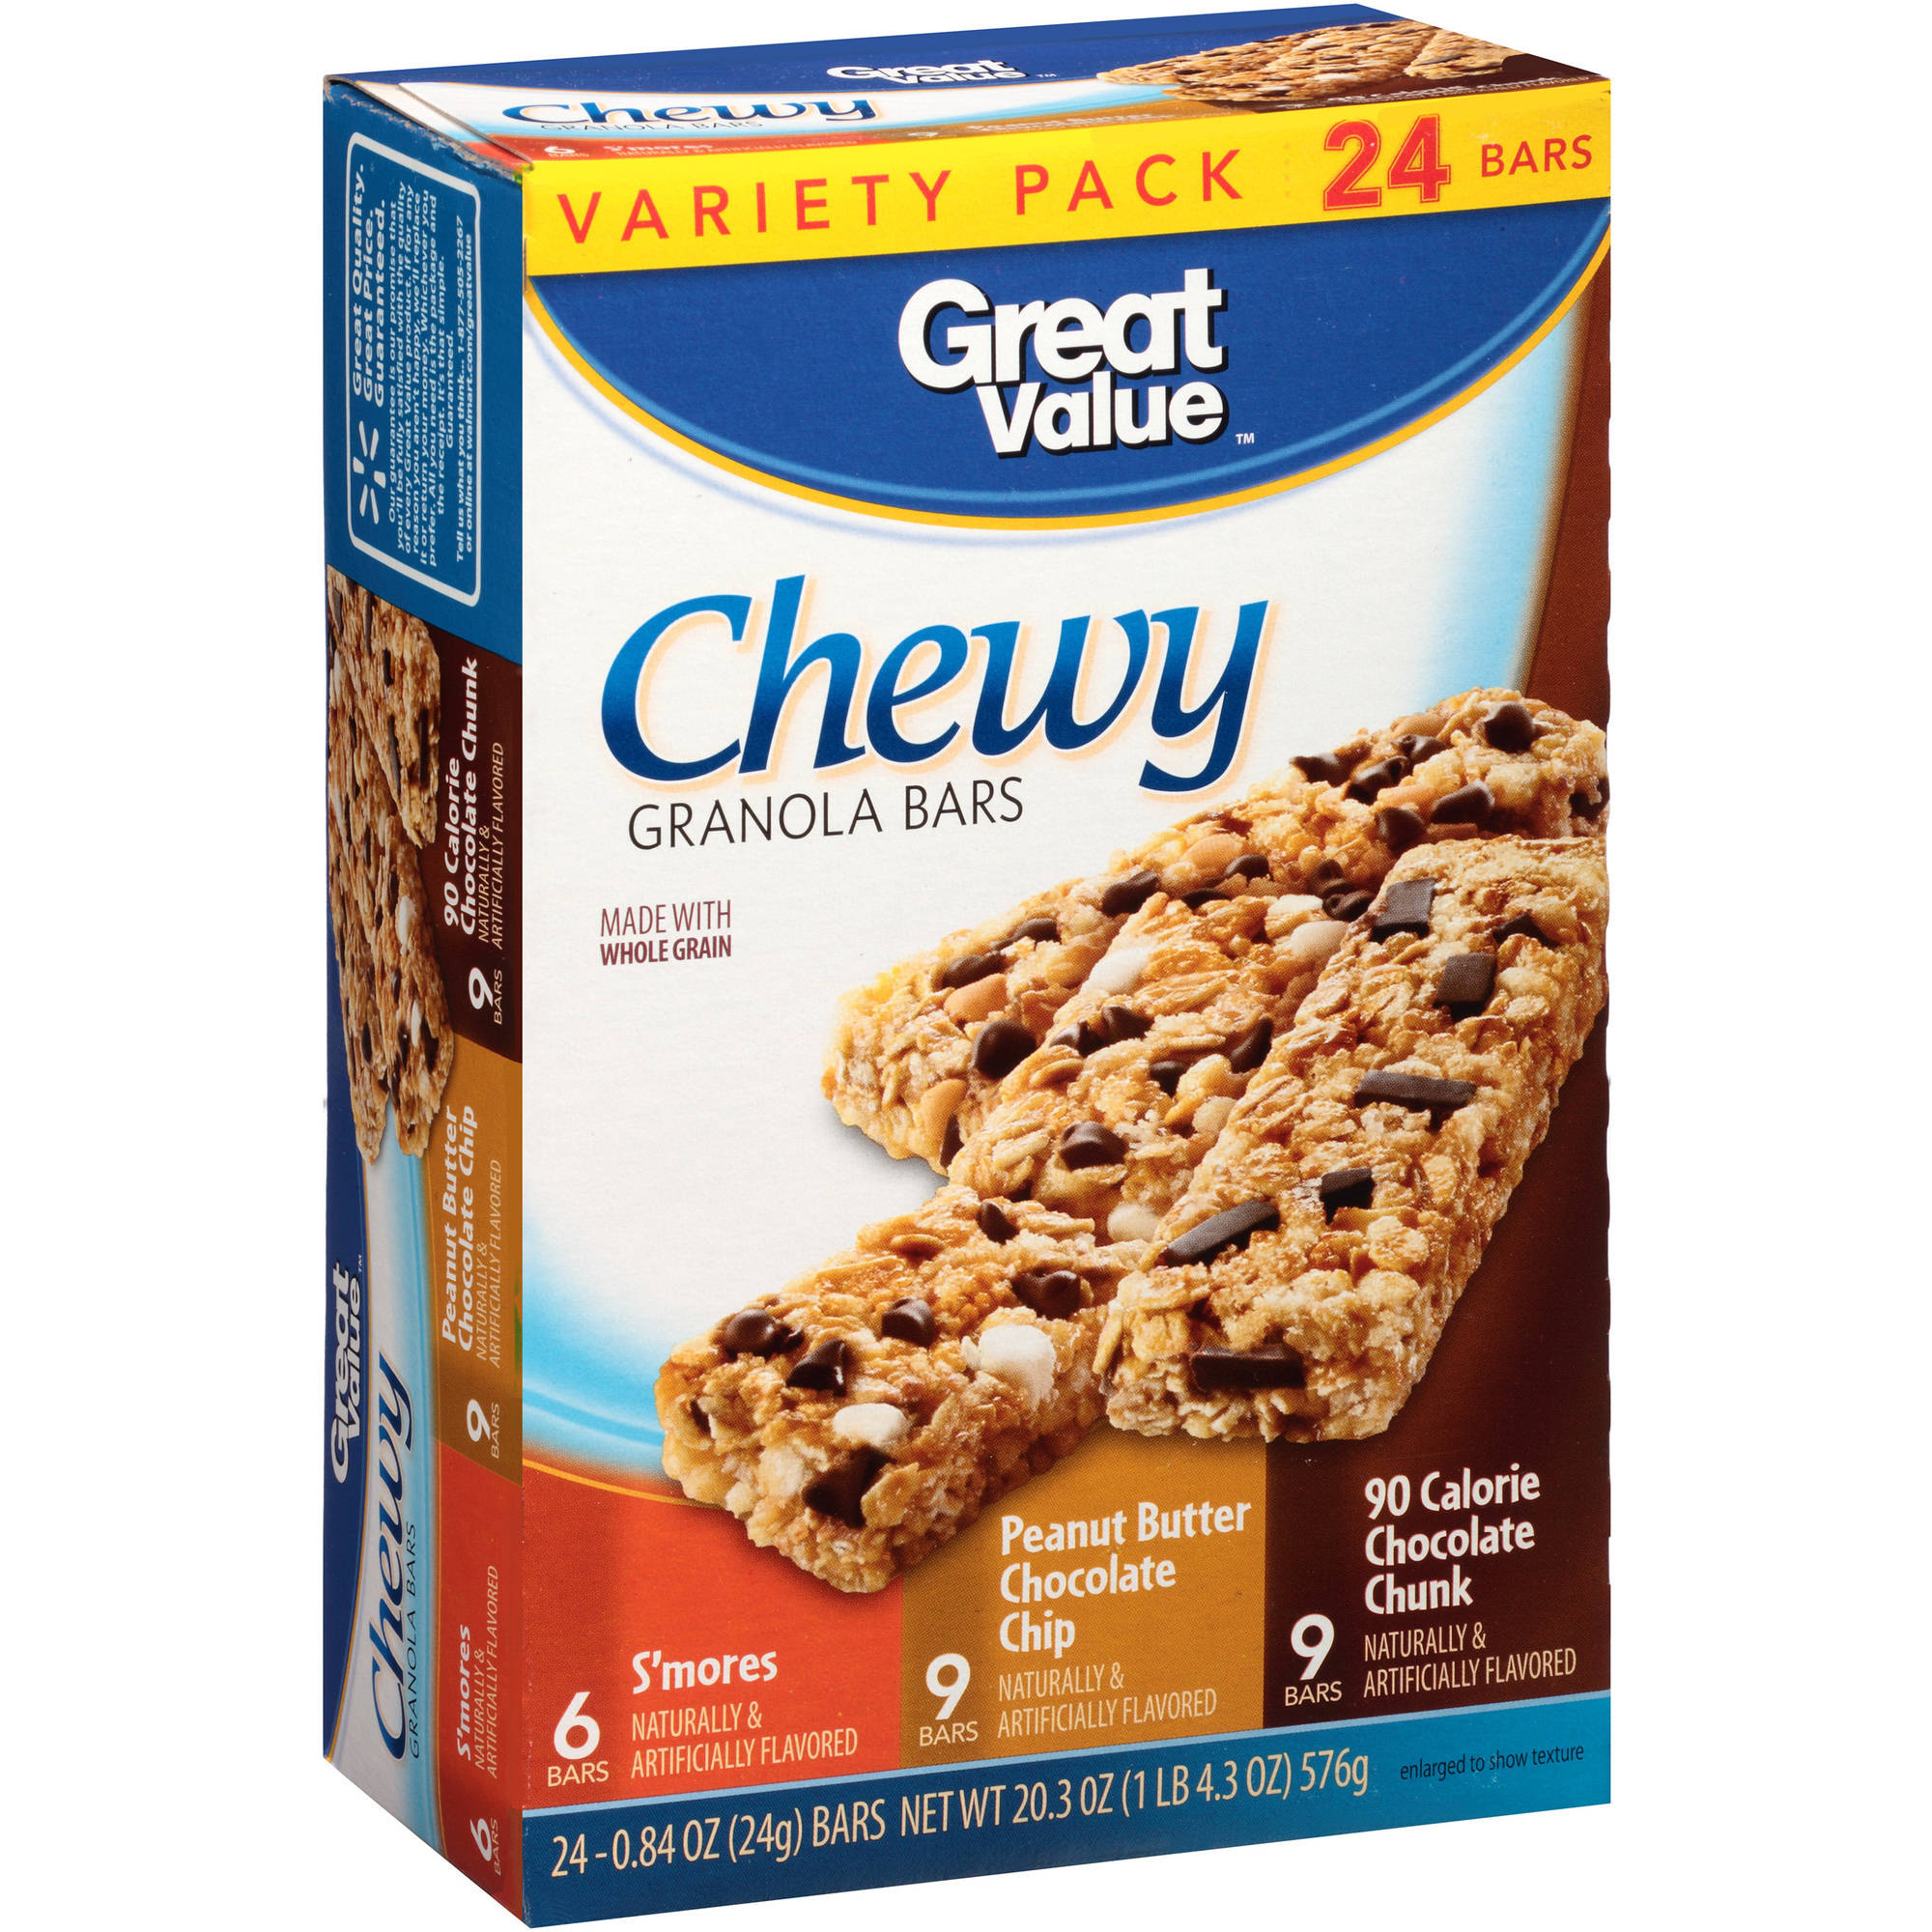 Great Value Chocolate Chunk Chewy Granola Bars Variety Pack, 0.84 oz, 24 ct